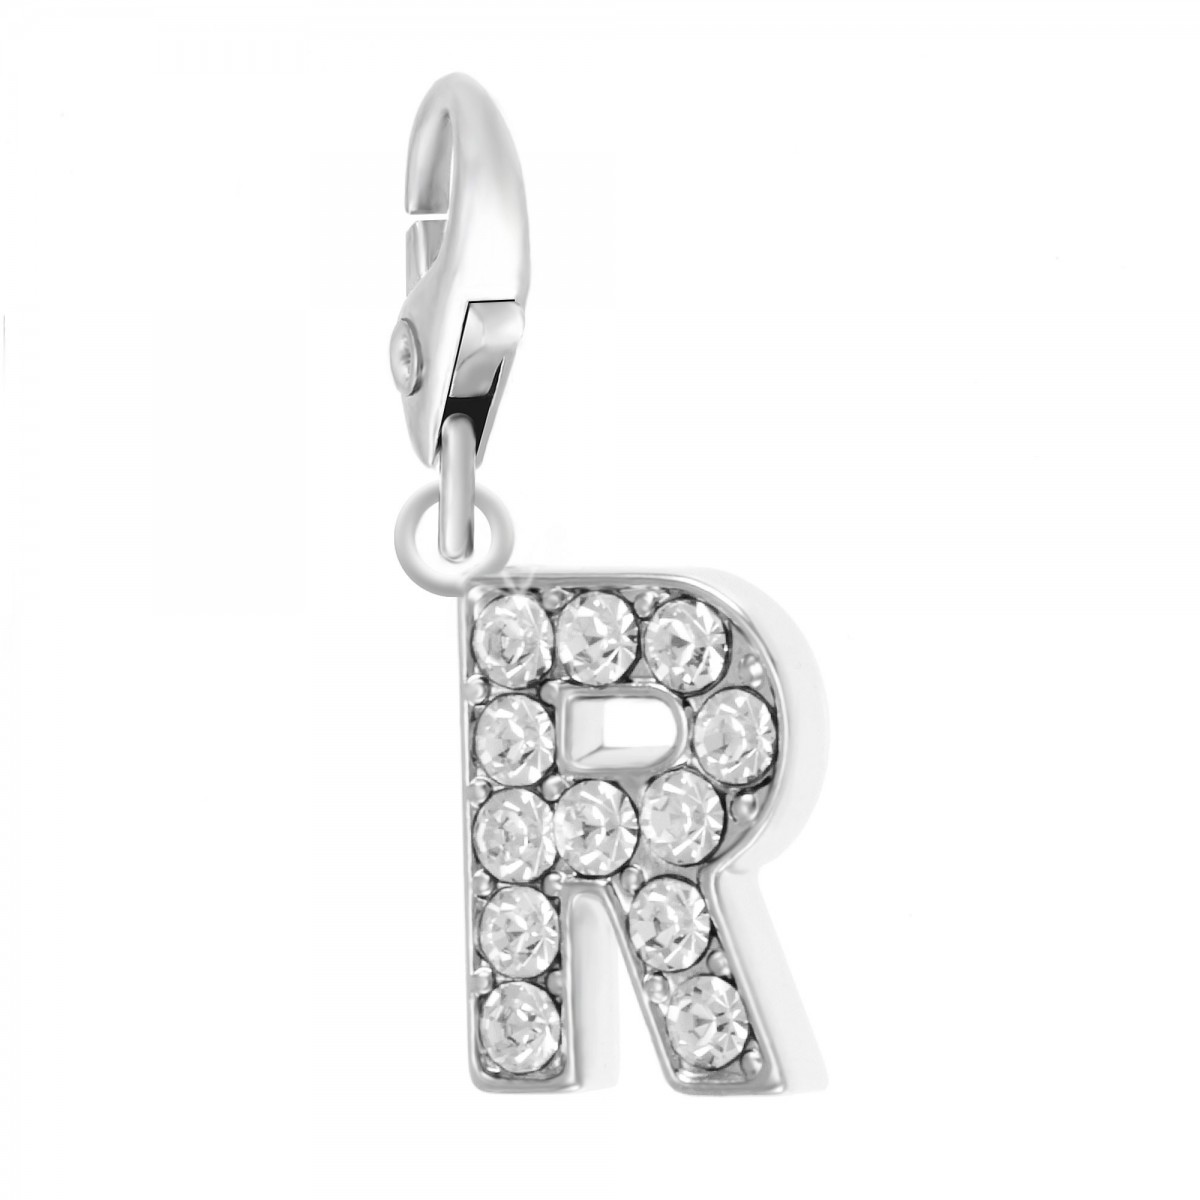 Charm Lettre R So Charm made with Crystal from Swarovski